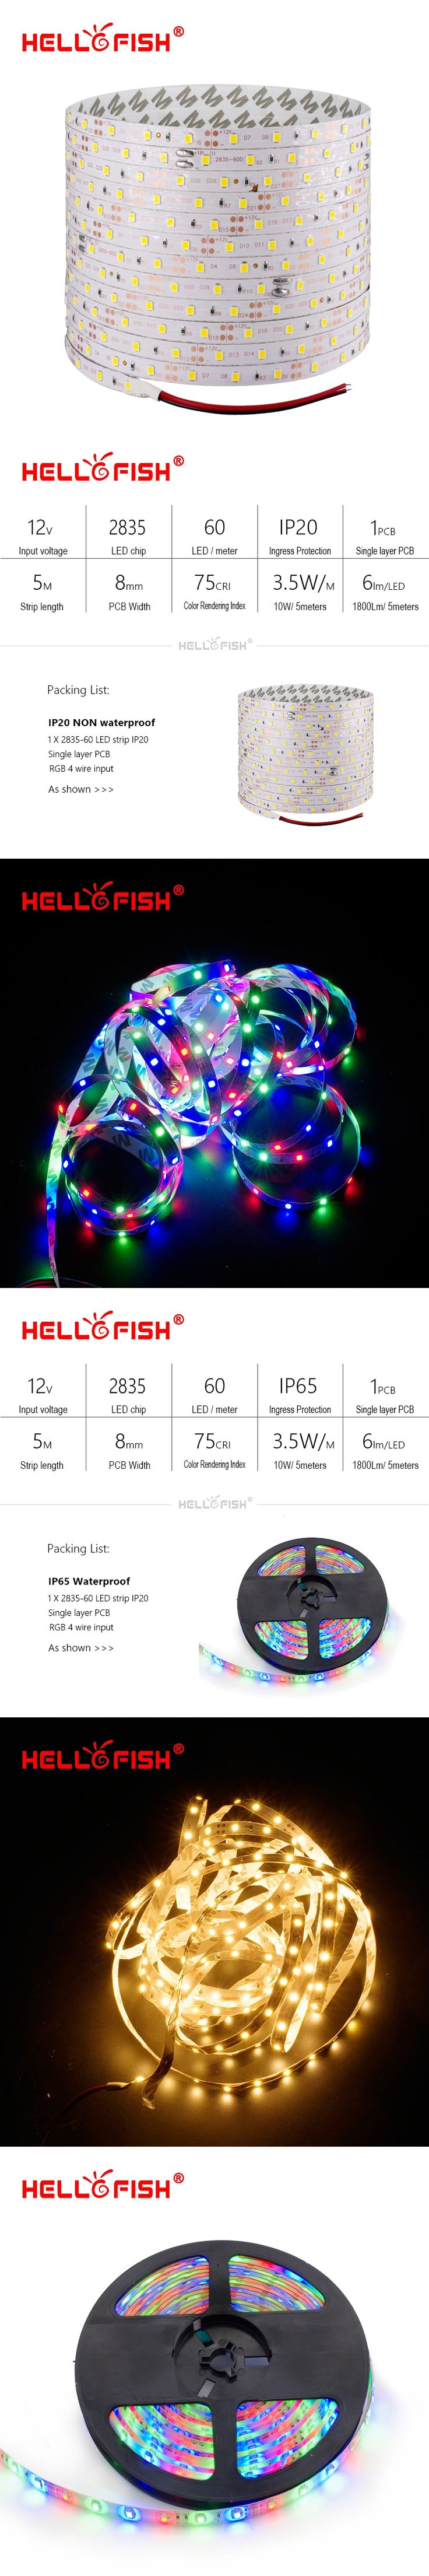 Hello Fish LED strip DC12V flexible LED light waterproof LED tape 5M 300 led chips RGB/ white/warm white/blue/green/red/yellow